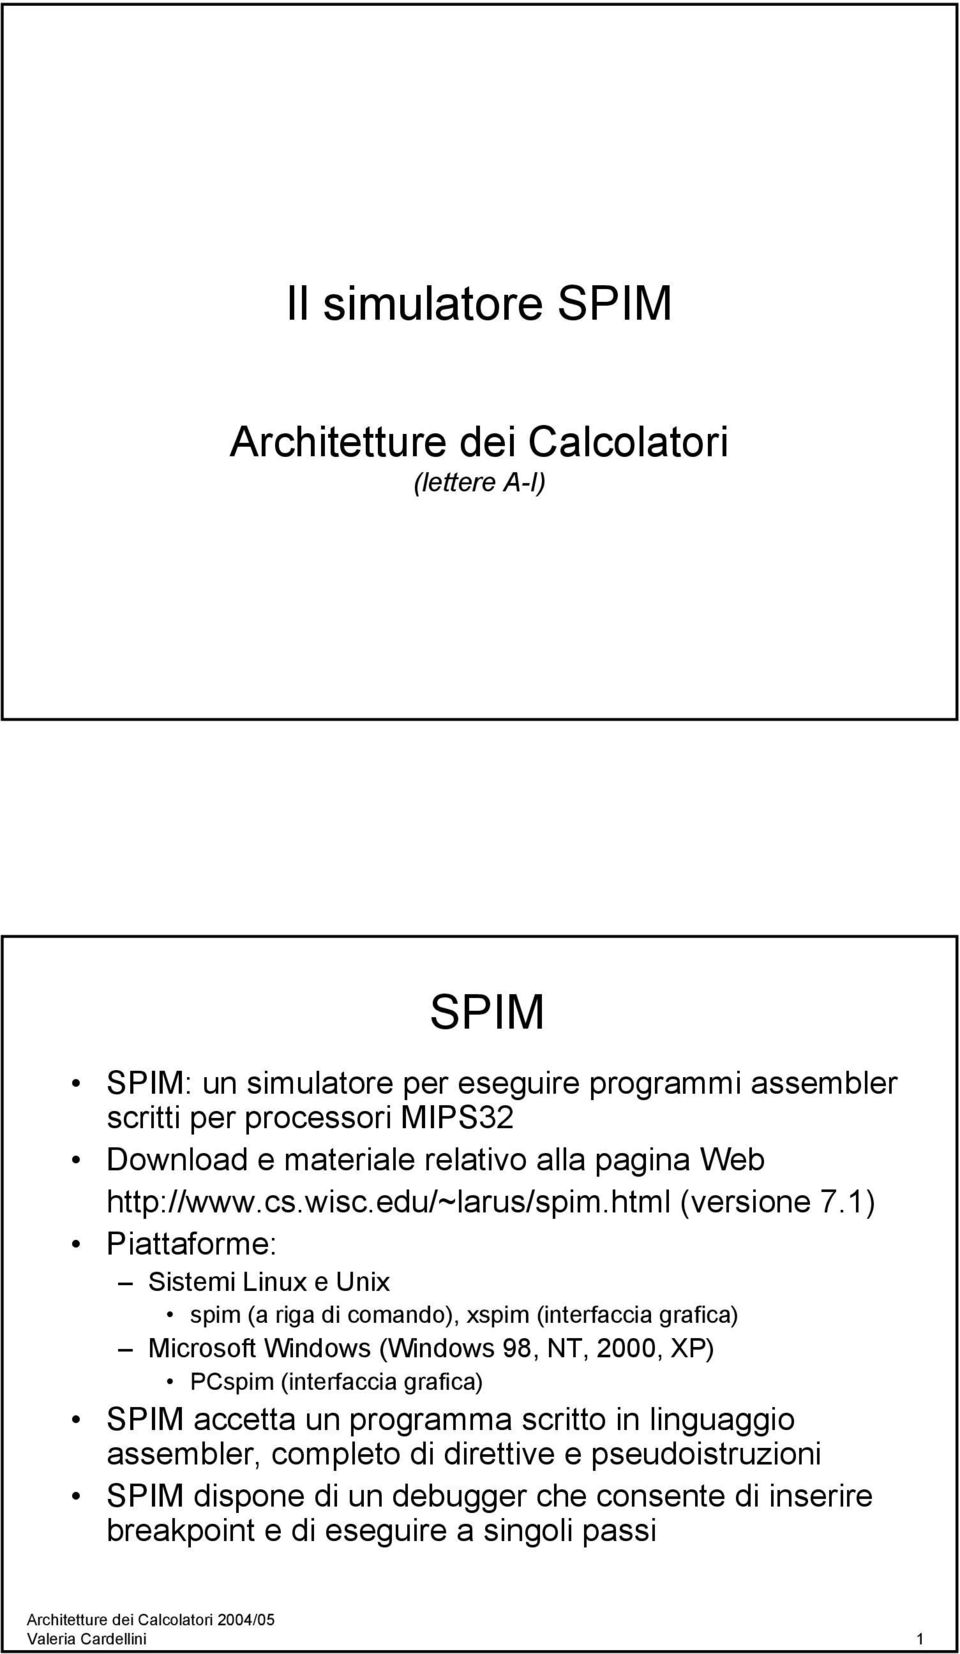 1) Piattaforme: Sistemi Linux e Unix spim (a riga di comando), xspim (interfaccia grafica) Microsoft Windows (Windows 98, NT, 2000, XP) PCspim (interfaccia